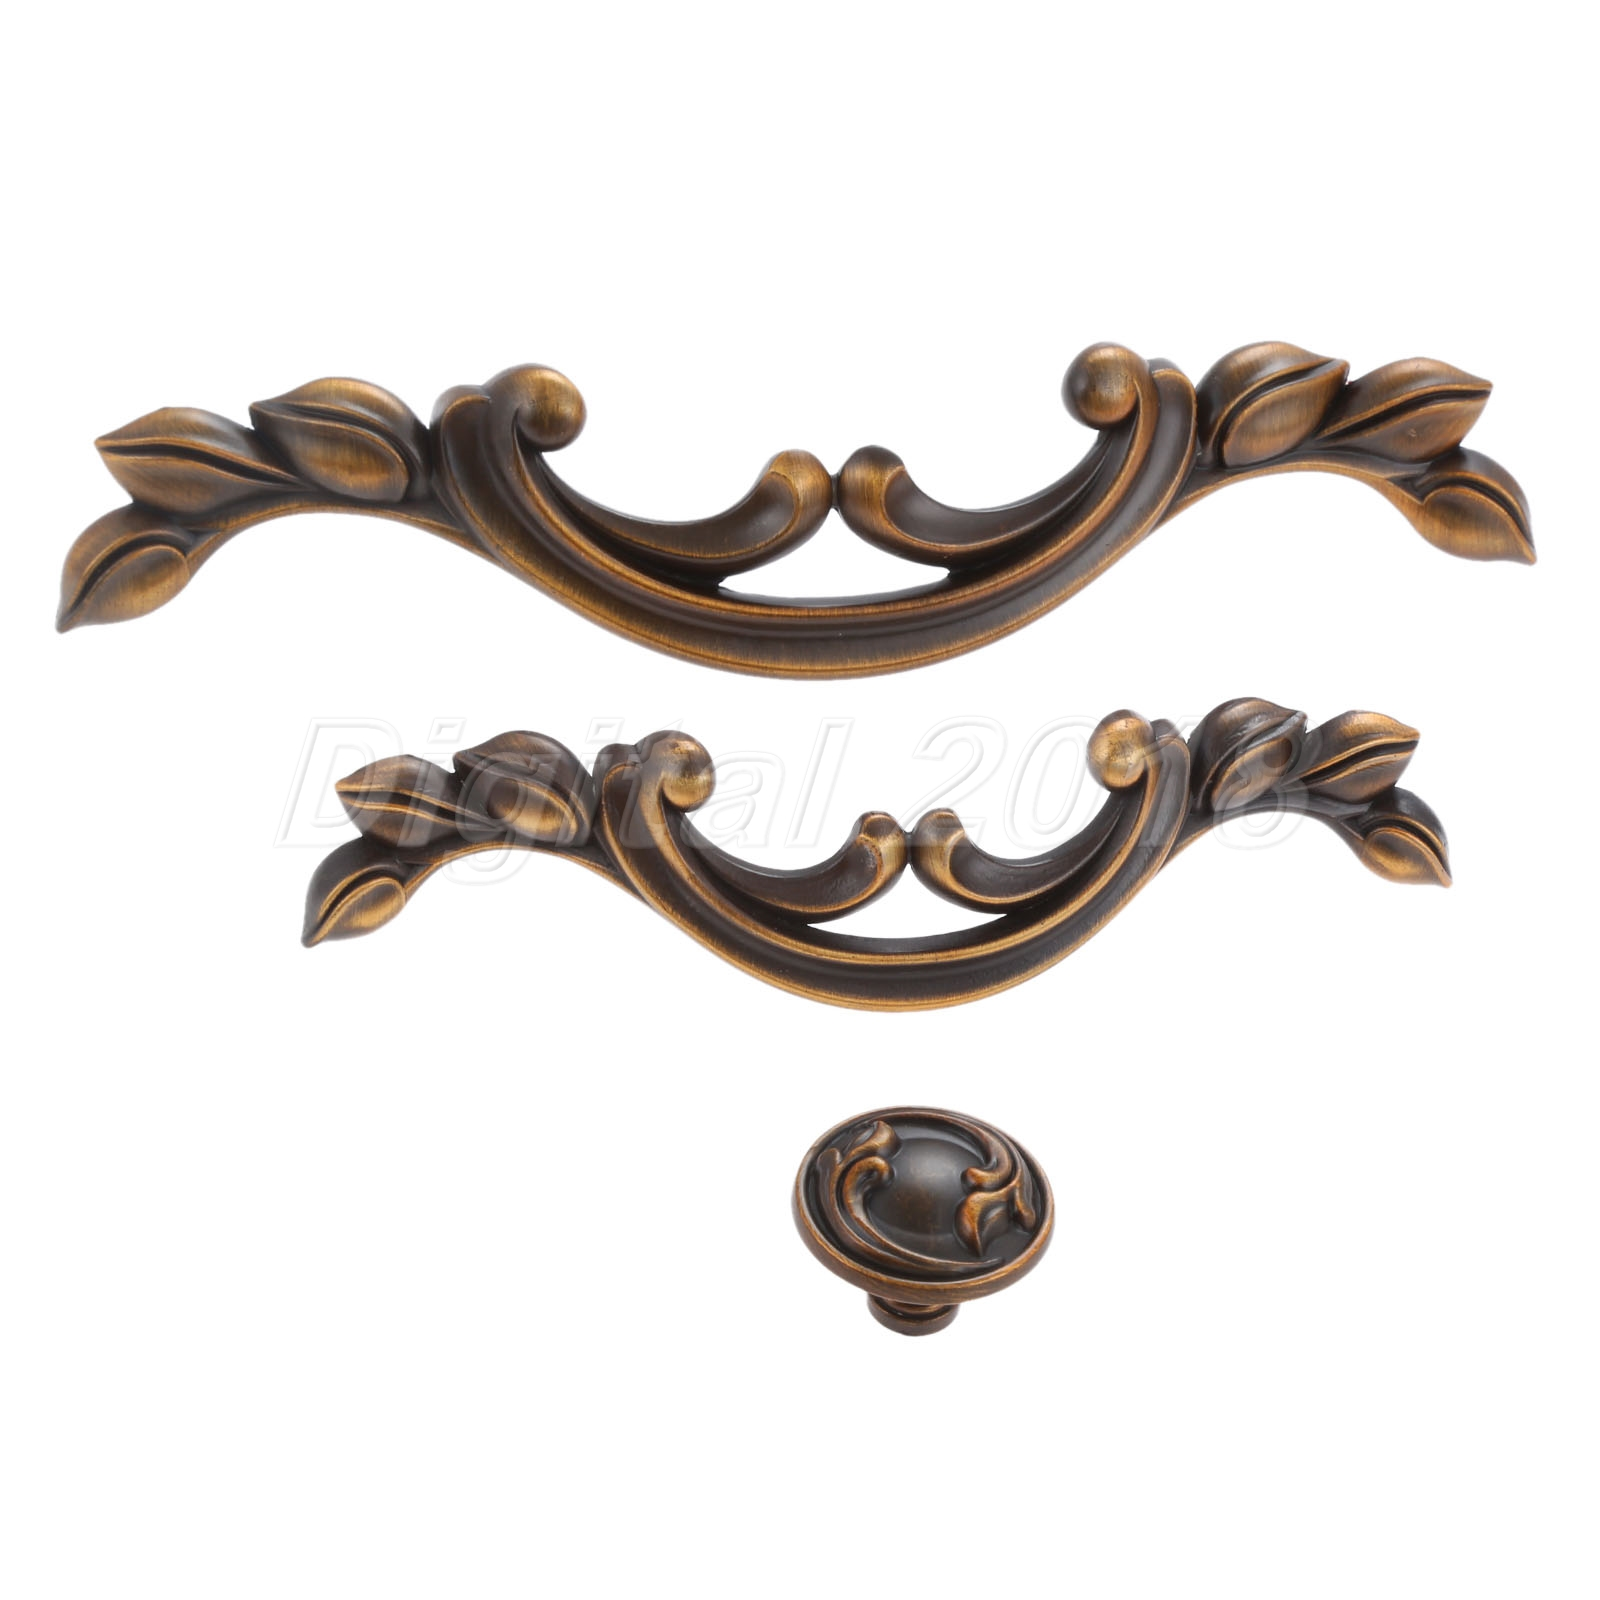 Details About Rustic Coffee Color Drawer Handles Kitchen Cabinet Knob Door Pulls Zinc Alloy